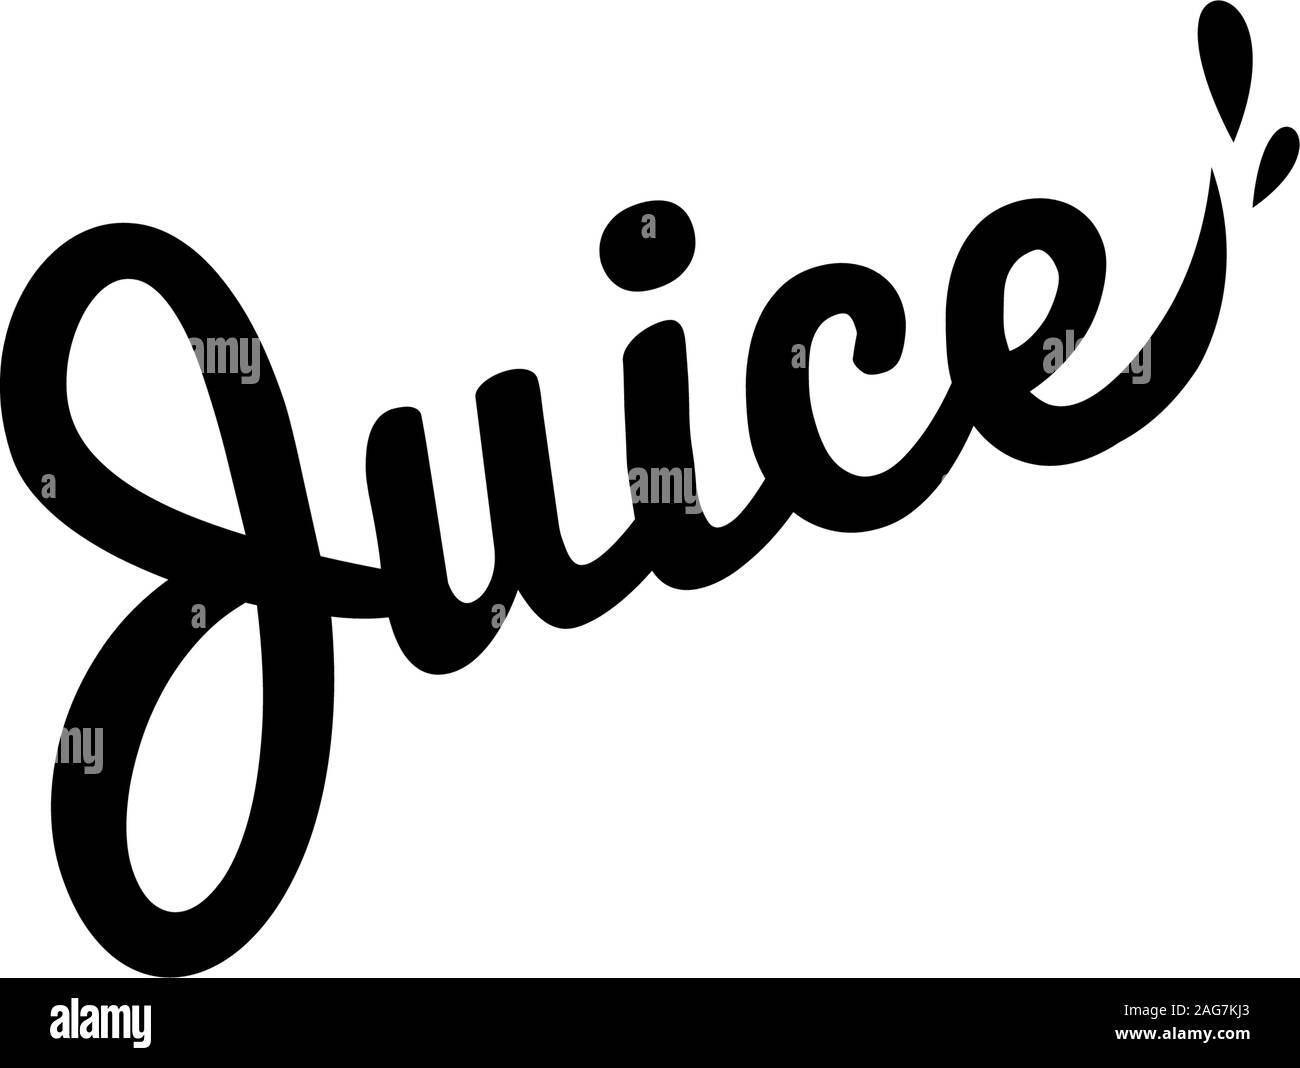 Drink Logo High Resolution Stock Photography And Images Alamy